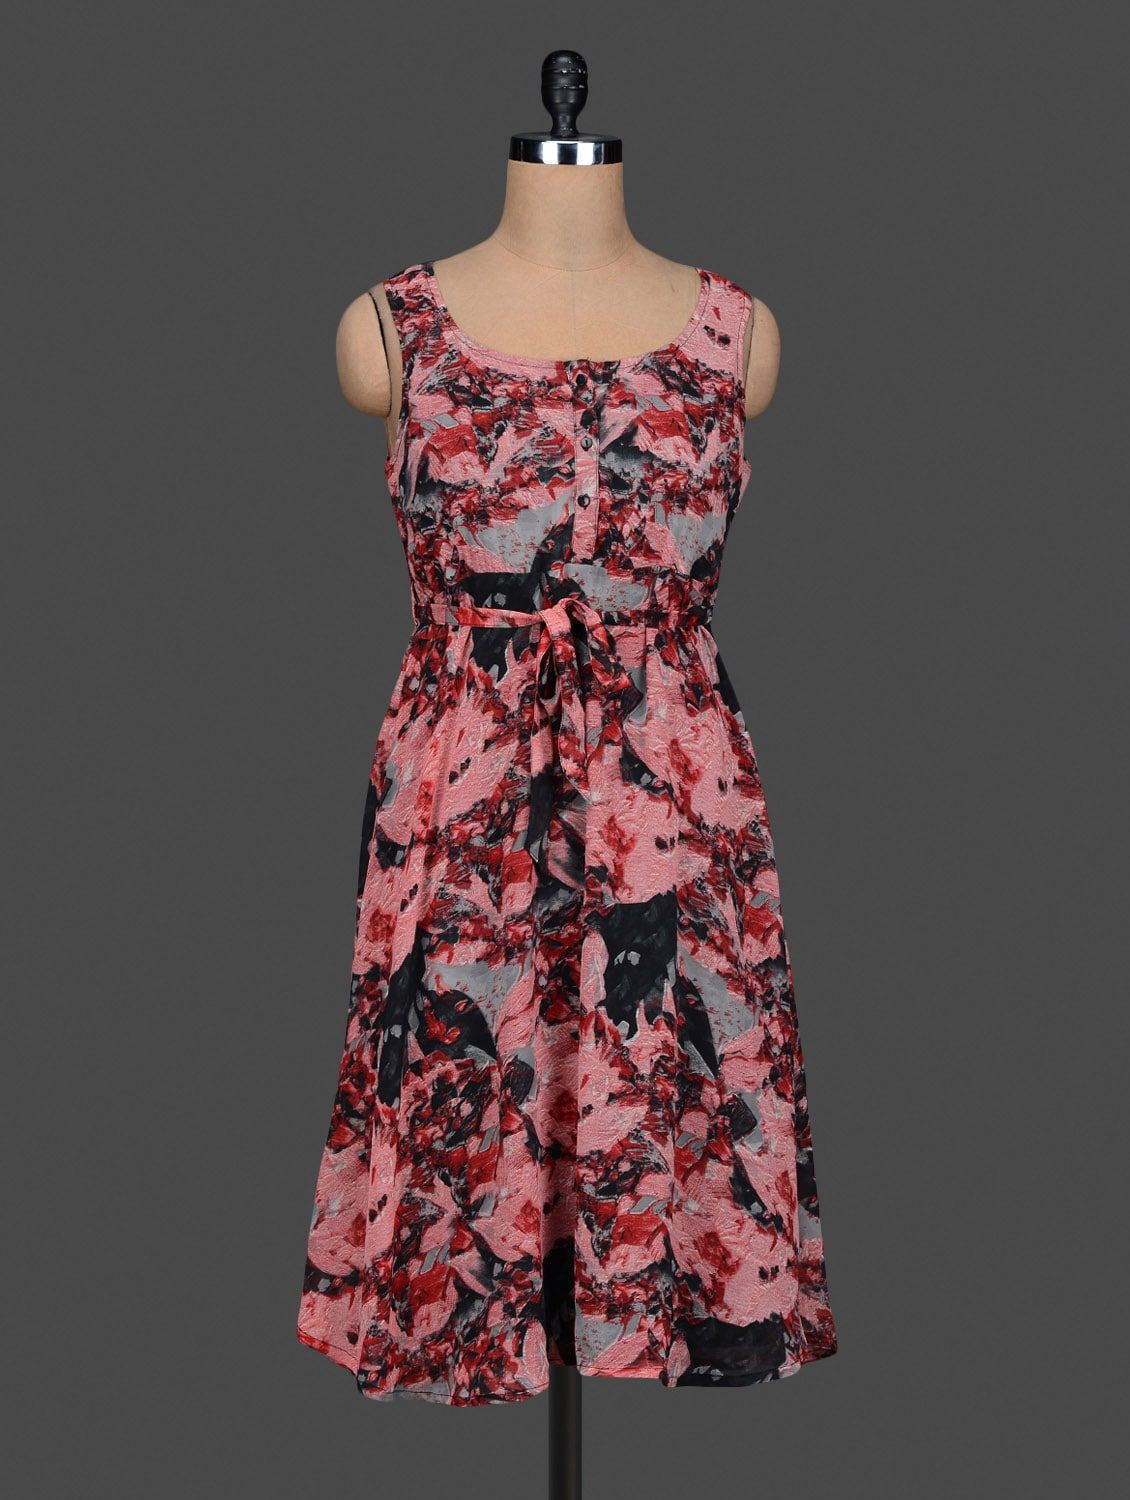 Abstract Printed Pink A-Line Midi Dress - Meira